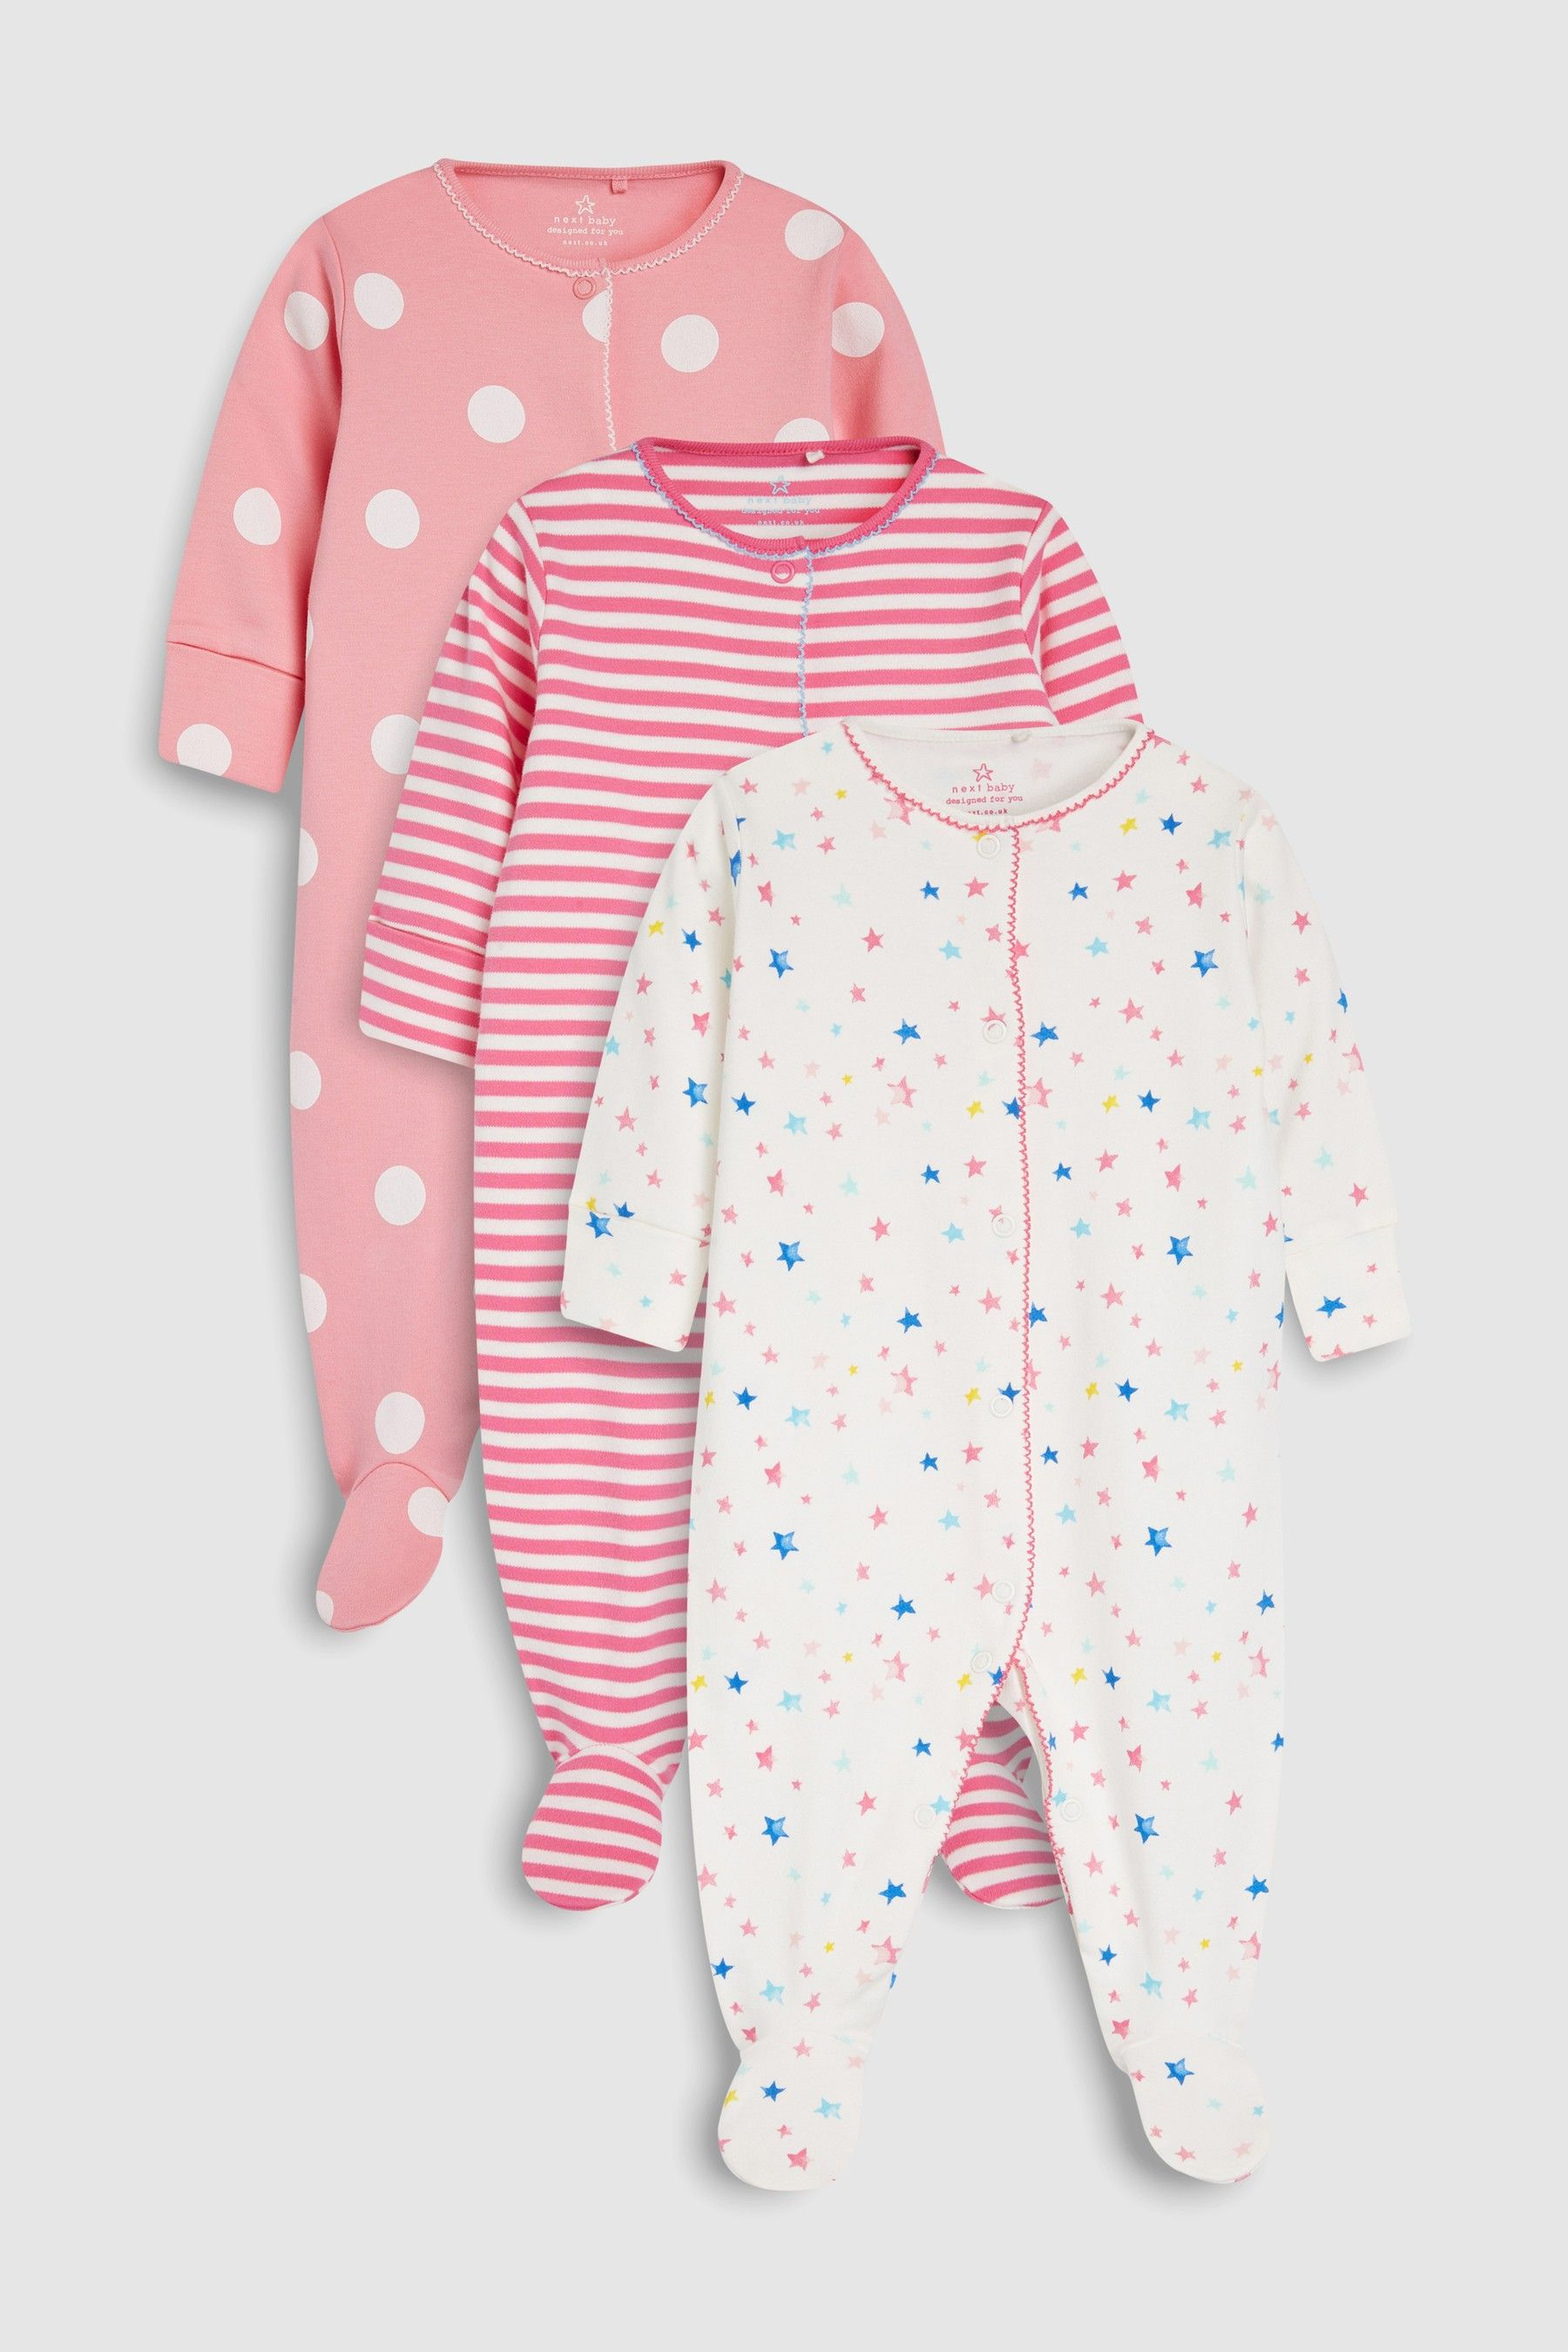 2 Pack Girls Long Sleeved Tops with Mummys Little Star//Cute detail